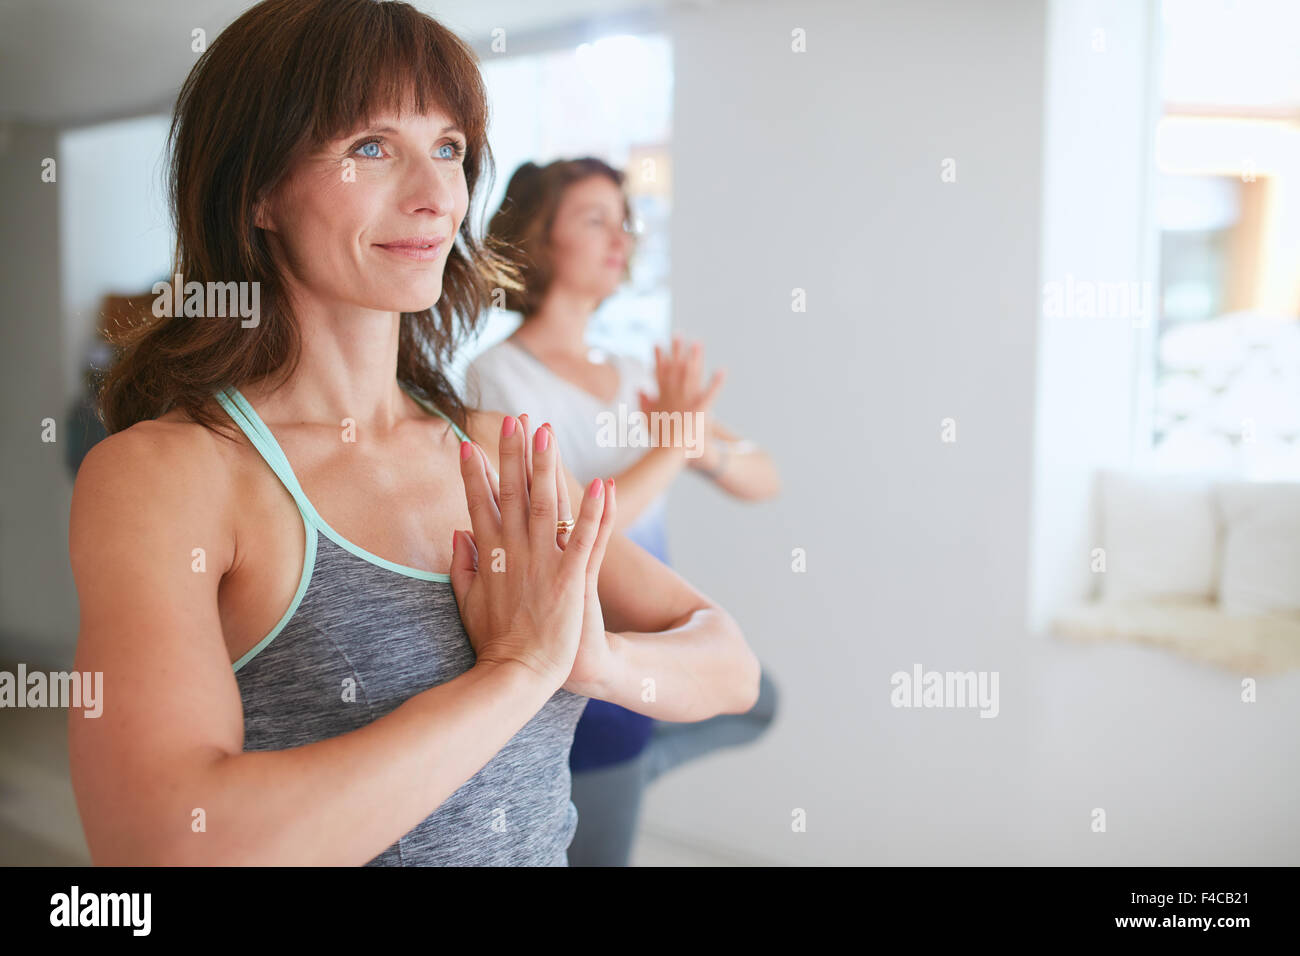 Portrait of fitness woman in doing yoga. Female trainer with student practicing Vrikshasana. Tree Pose with hands - Stock Image